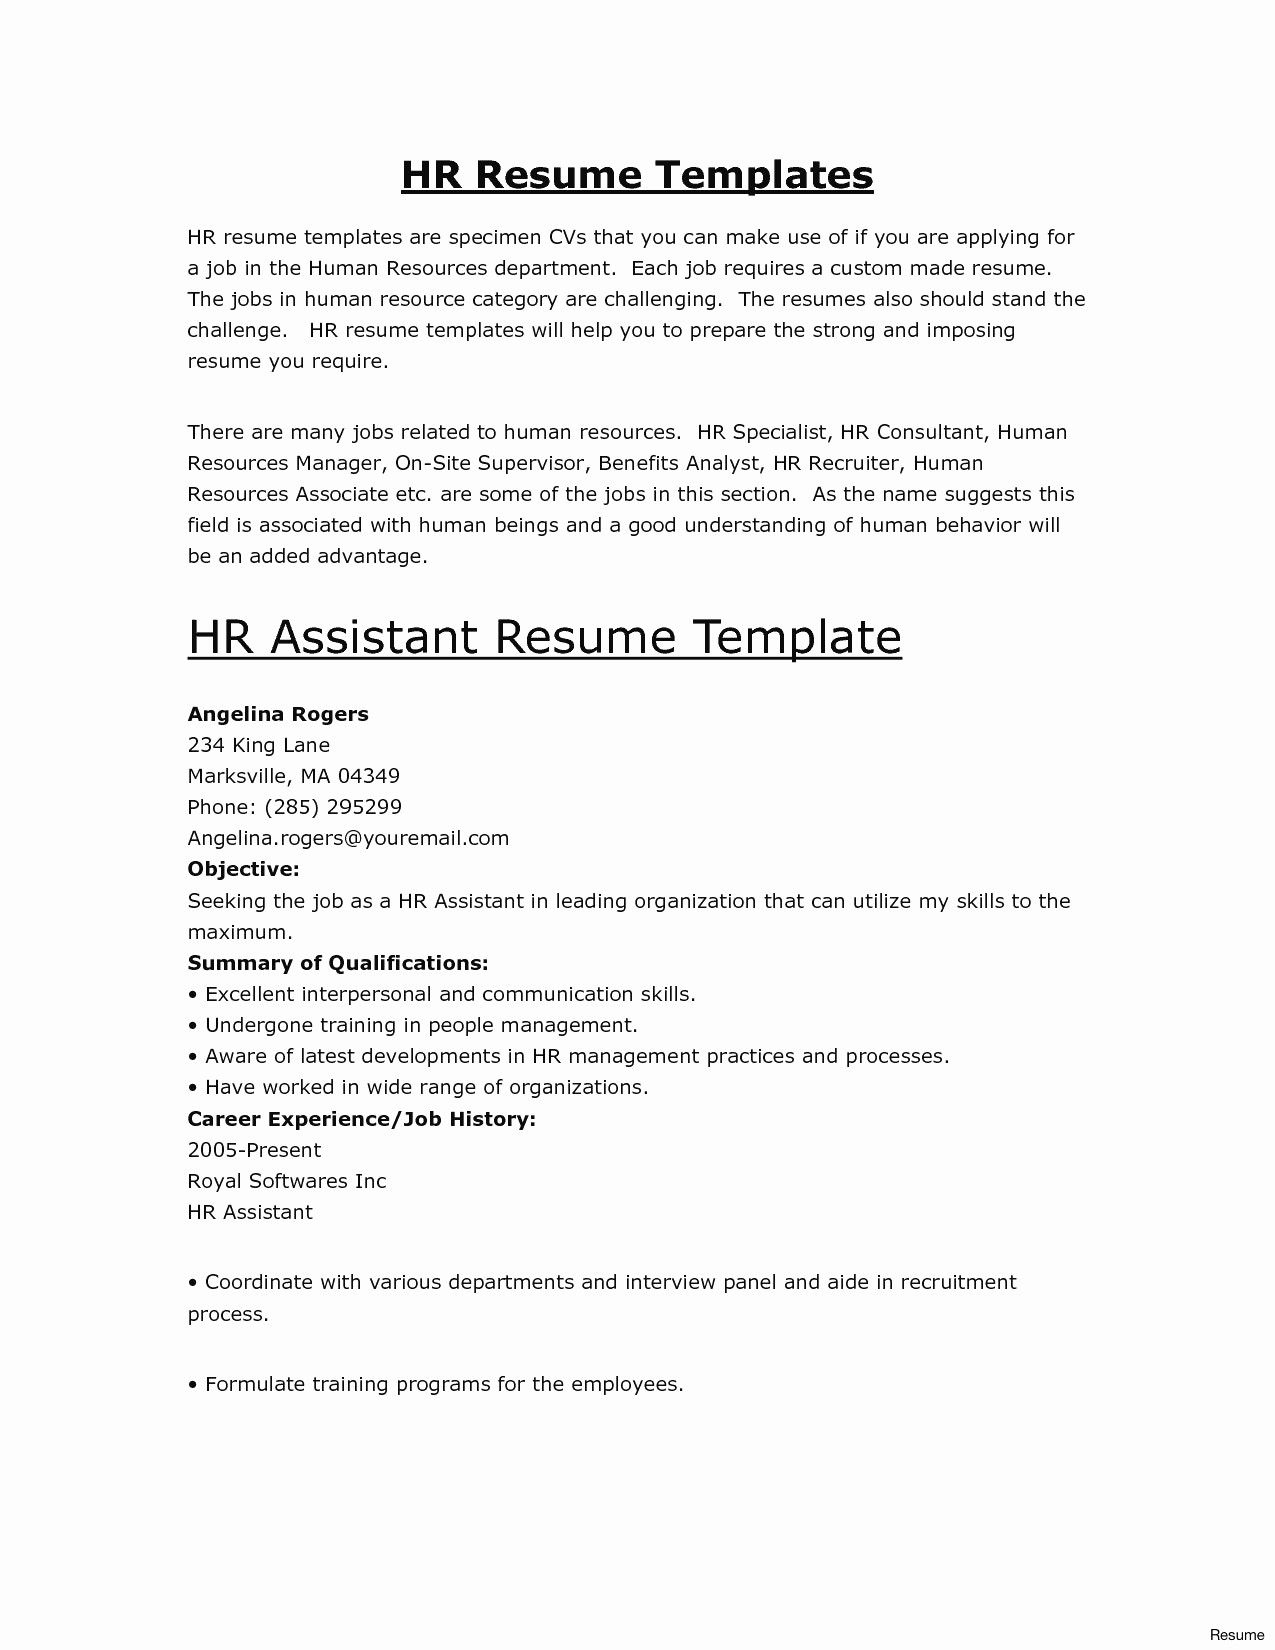 free employment verification letter template example-free word resume template awesome free resume template builder inspirational od specialist sample of free word 19-e